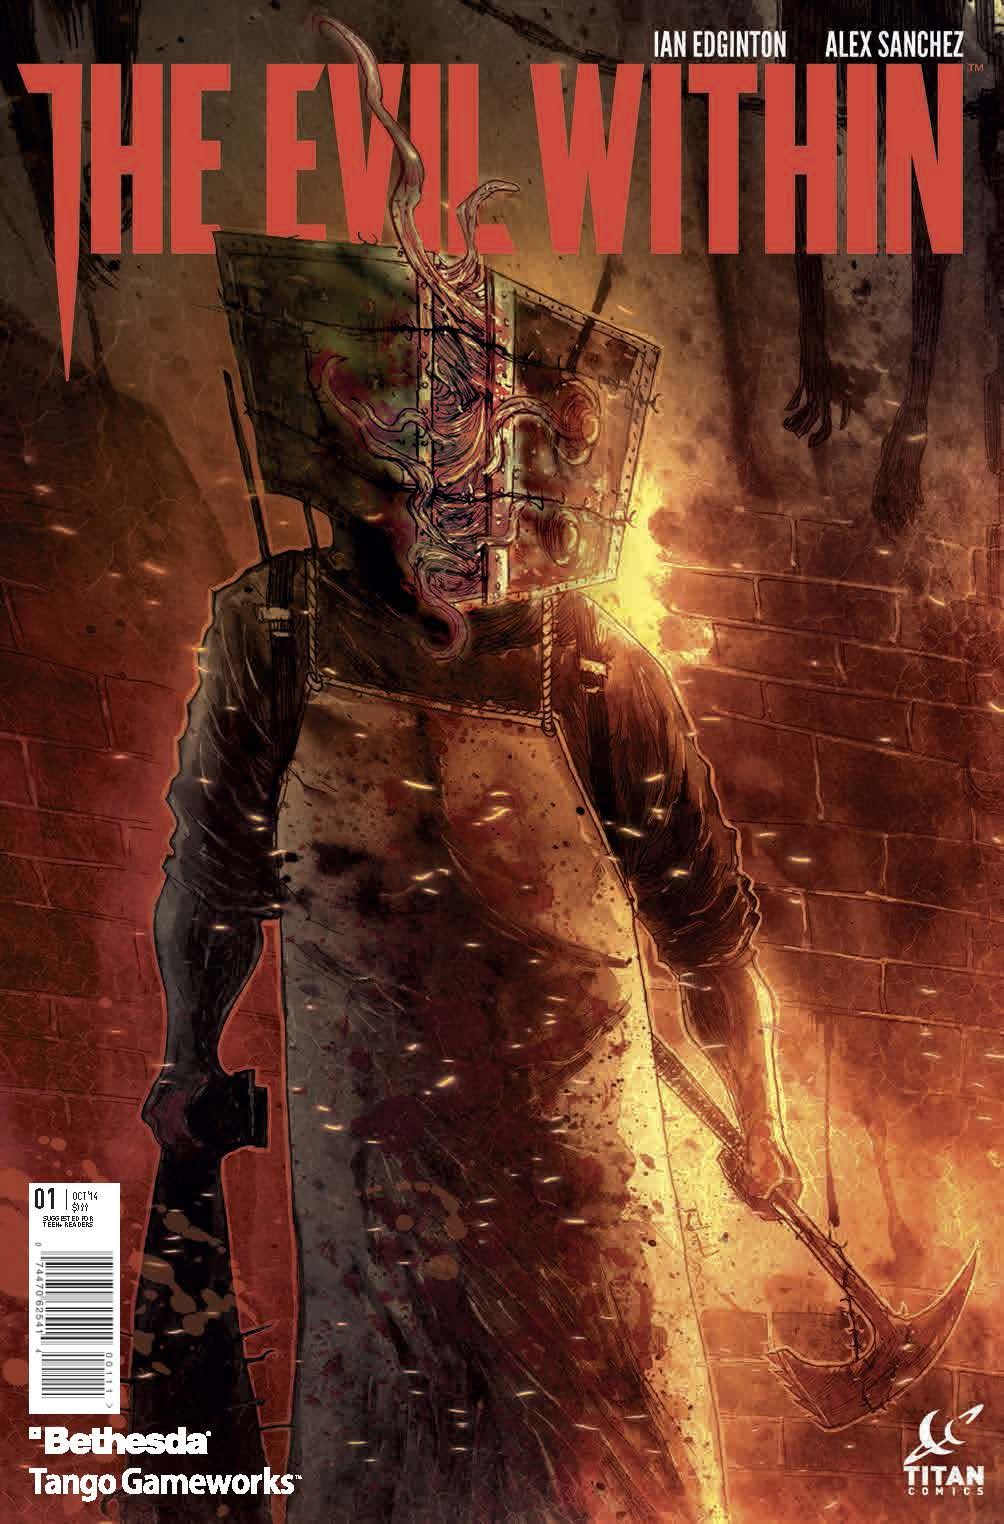 EVIL WITHIN #1 COVER (Ben Templesmith)